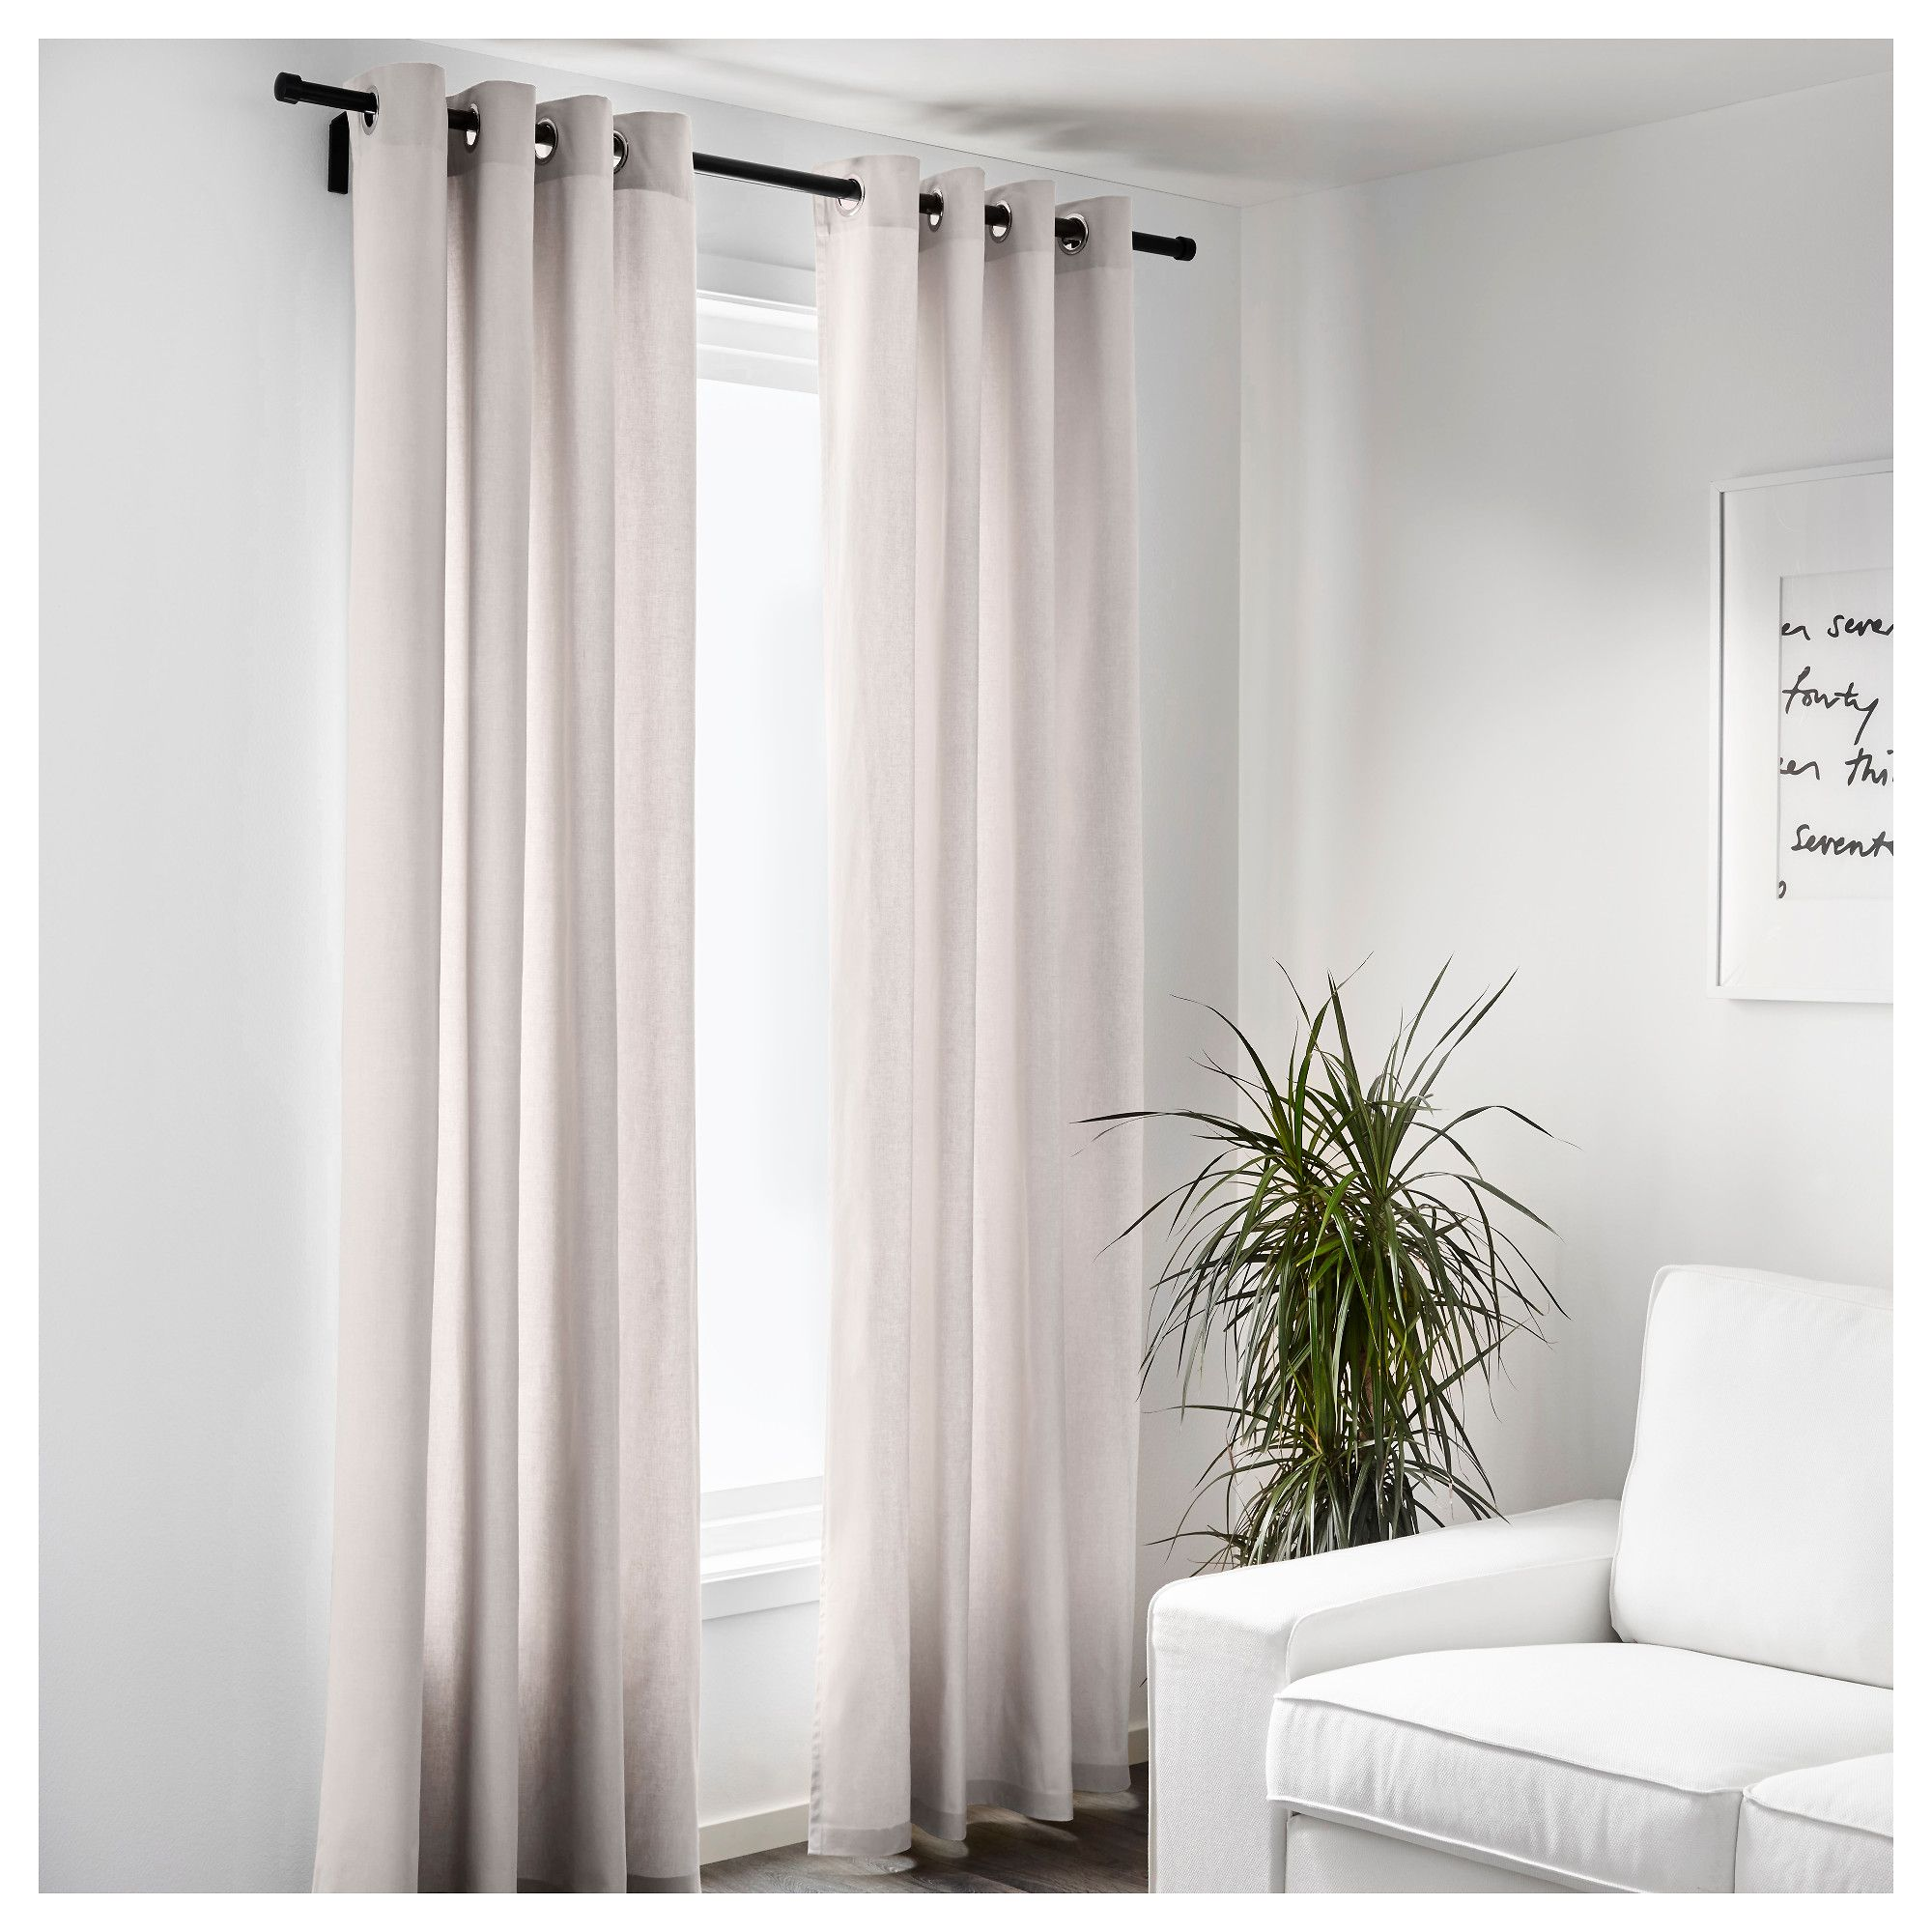 MERETE Curtains, 1 pair, beige | Bedrooms, Living rooms and Room